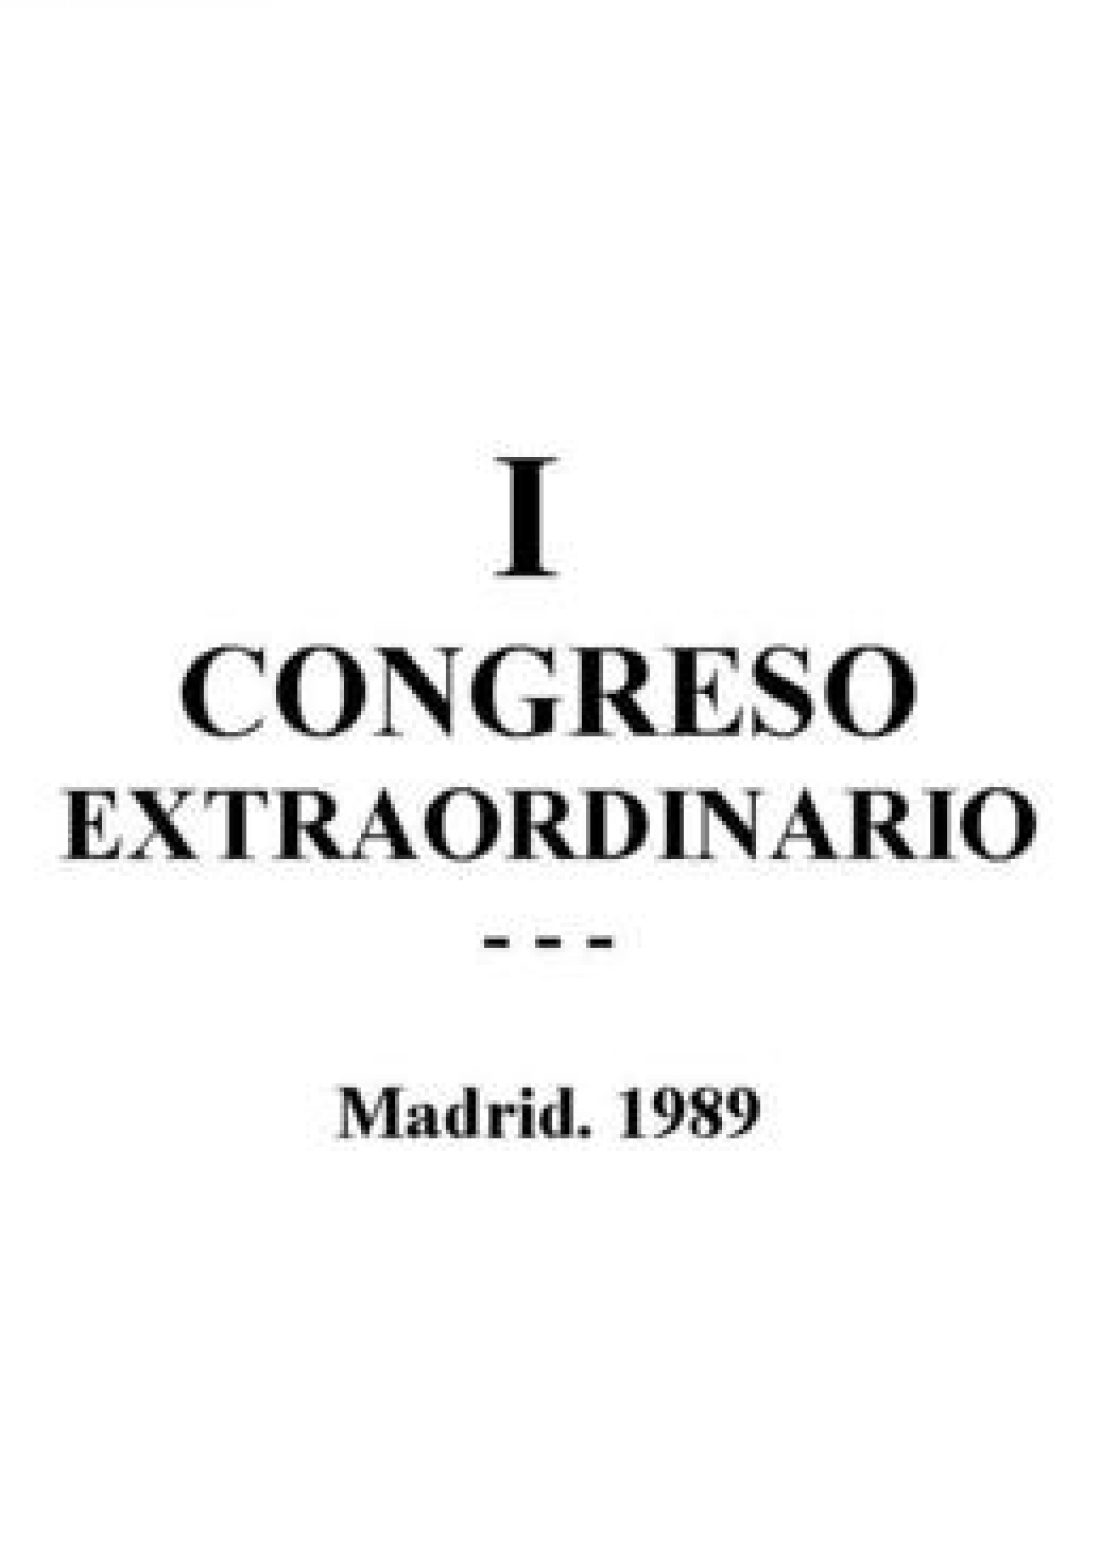 I Congreso Extraordinario Madrid 1989